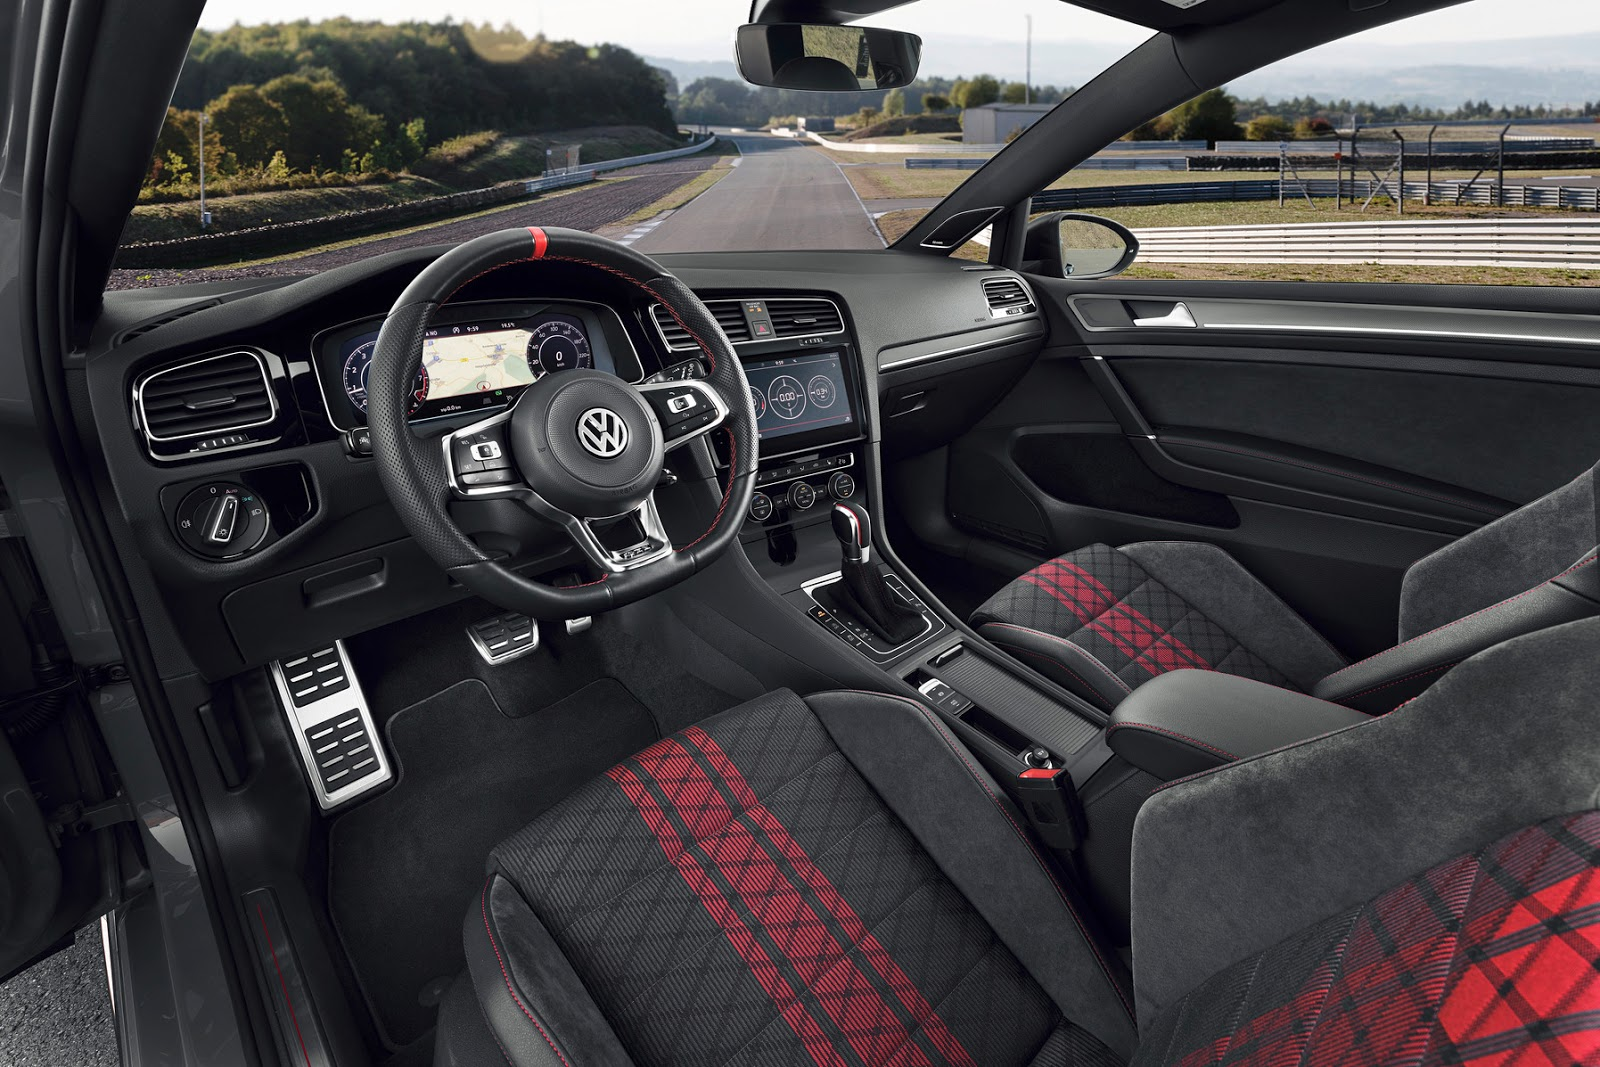 2020 Volkswagen Golf Gti Tcr Interior Exterior Design